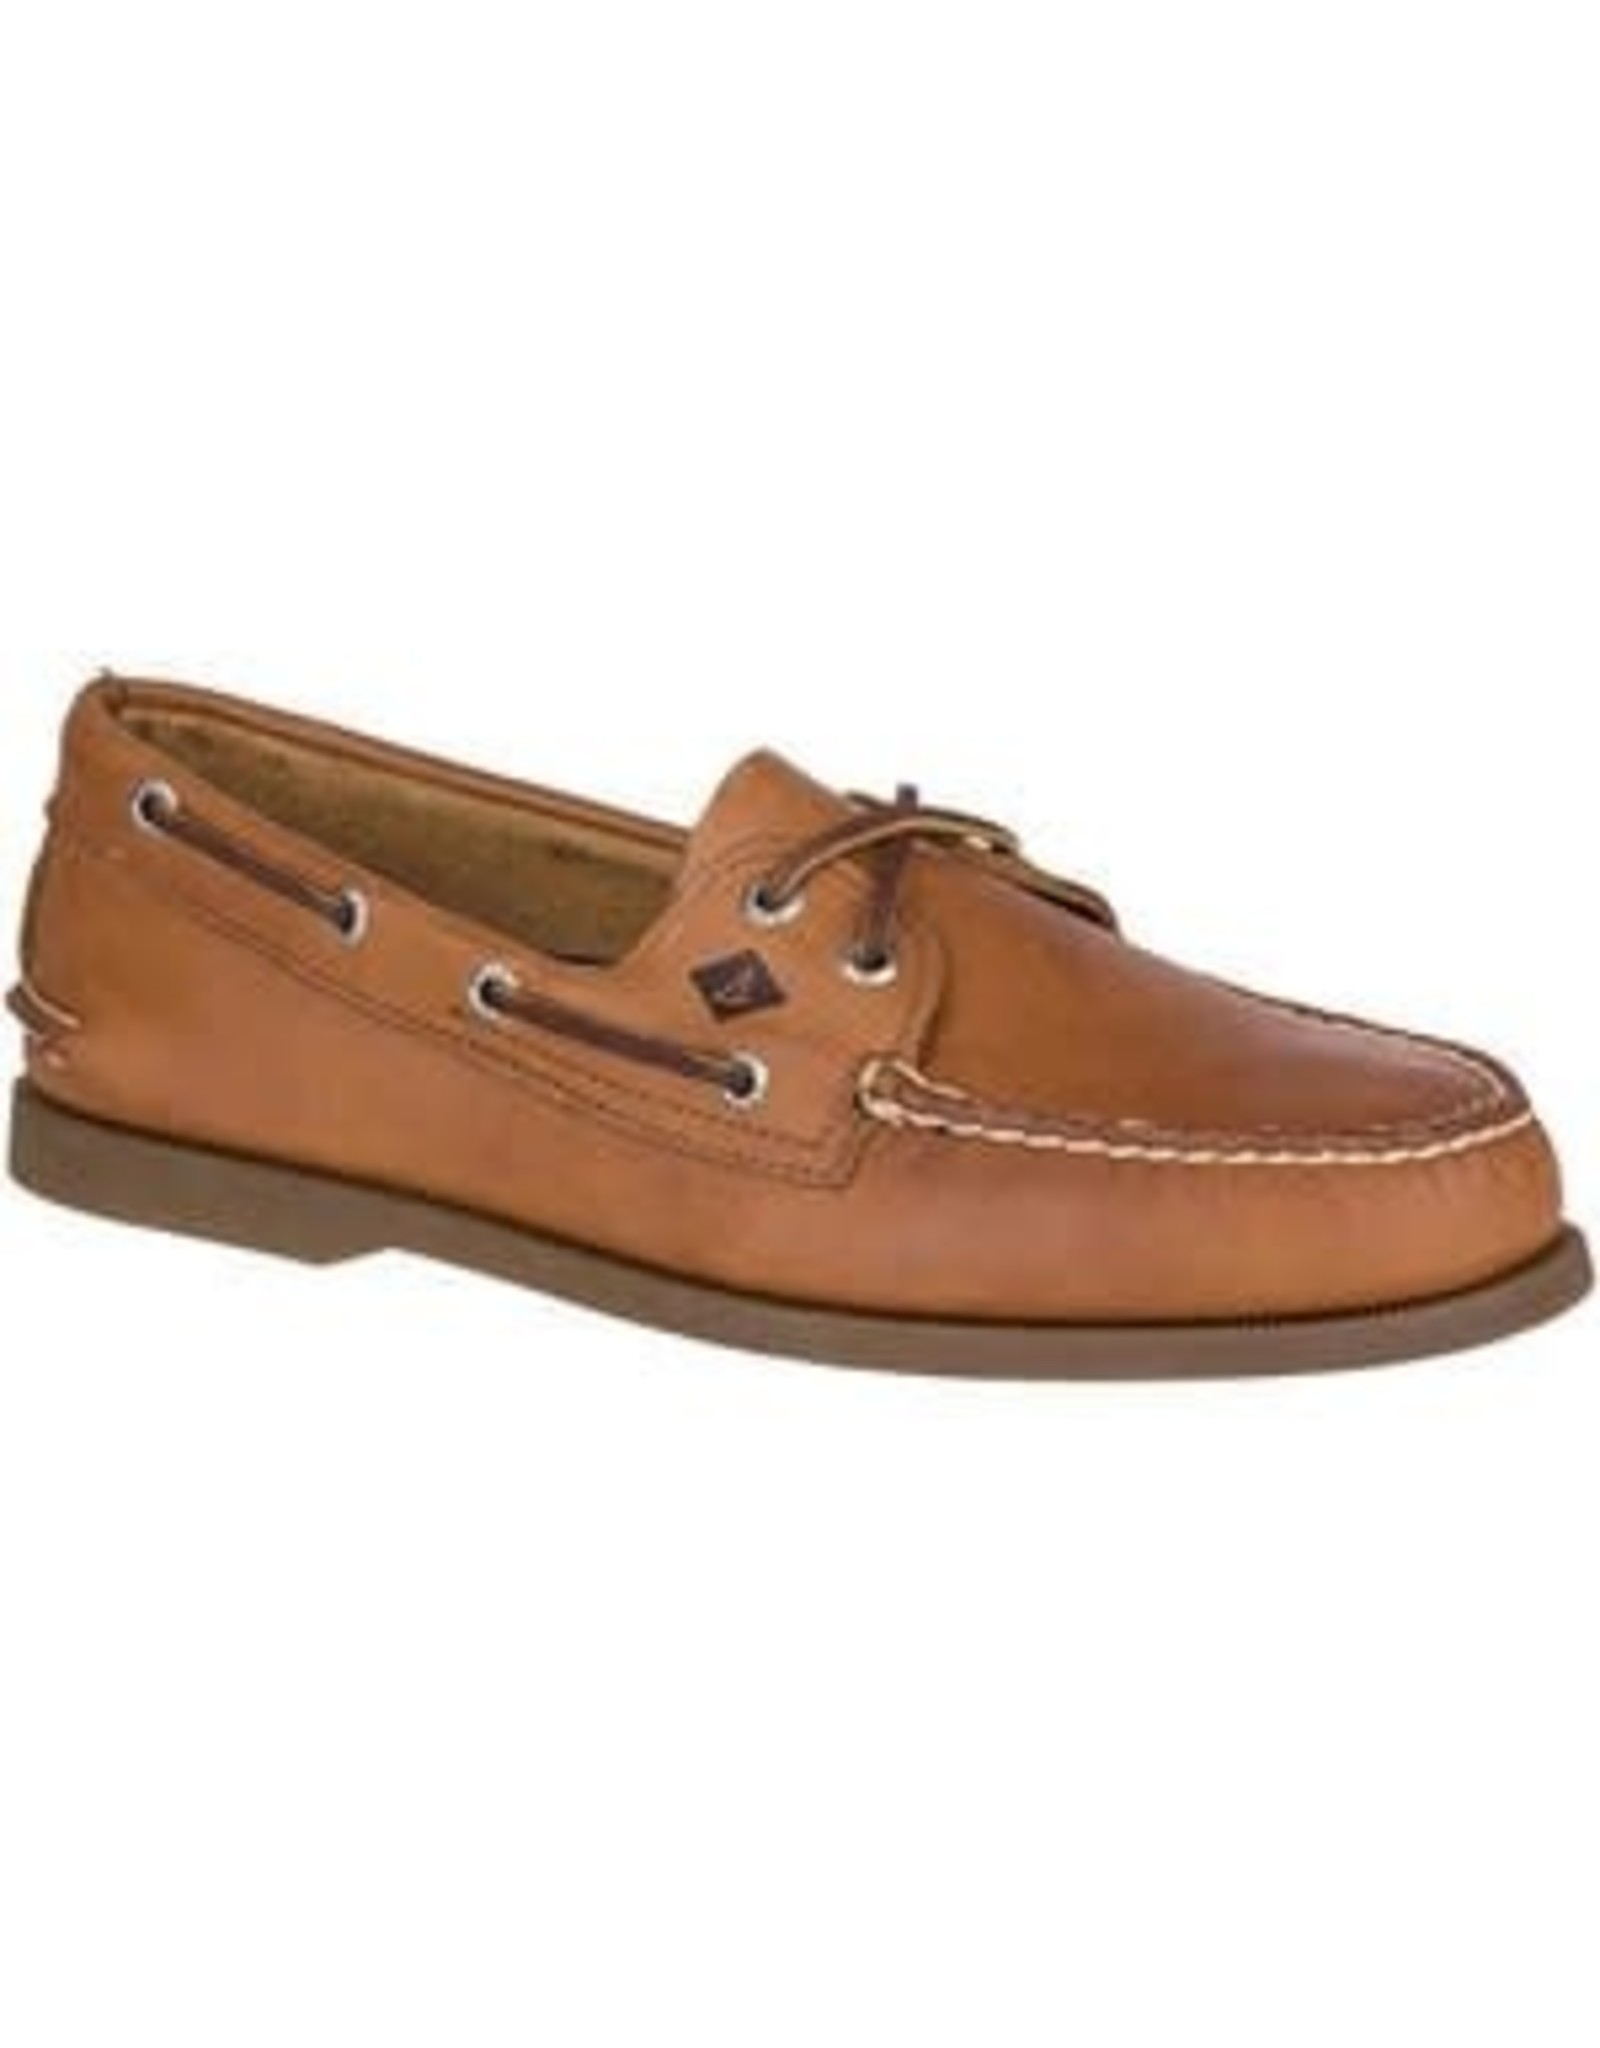 Sperry A/O 2-Eye Leather Boat Shoe